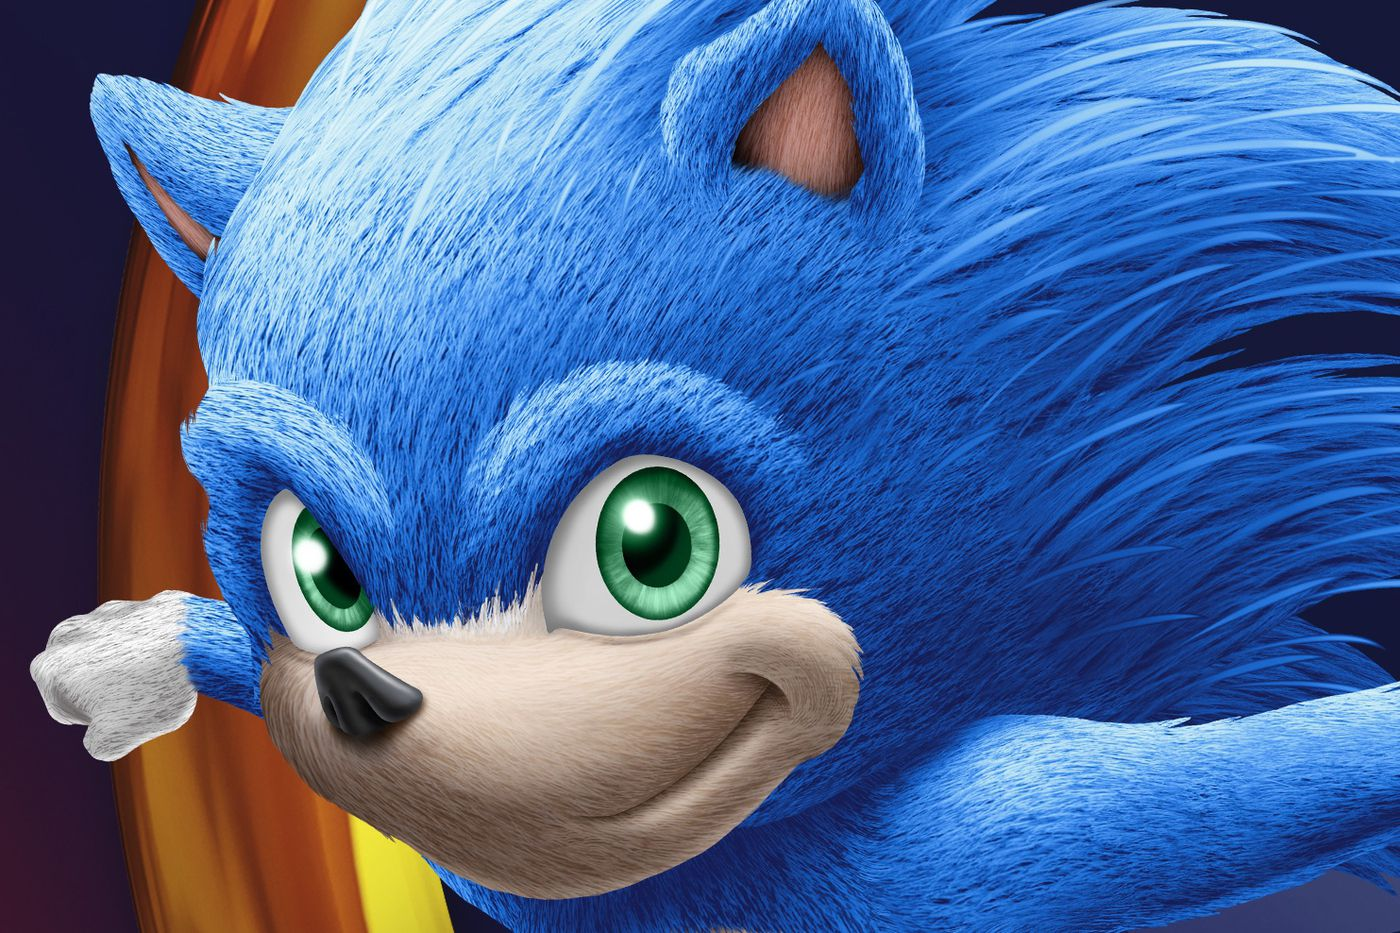 Clipart live blue movies clip royalty free Here he is: Sonic the Hedgehog in full, live-action movie form - Polygon clip royalty free